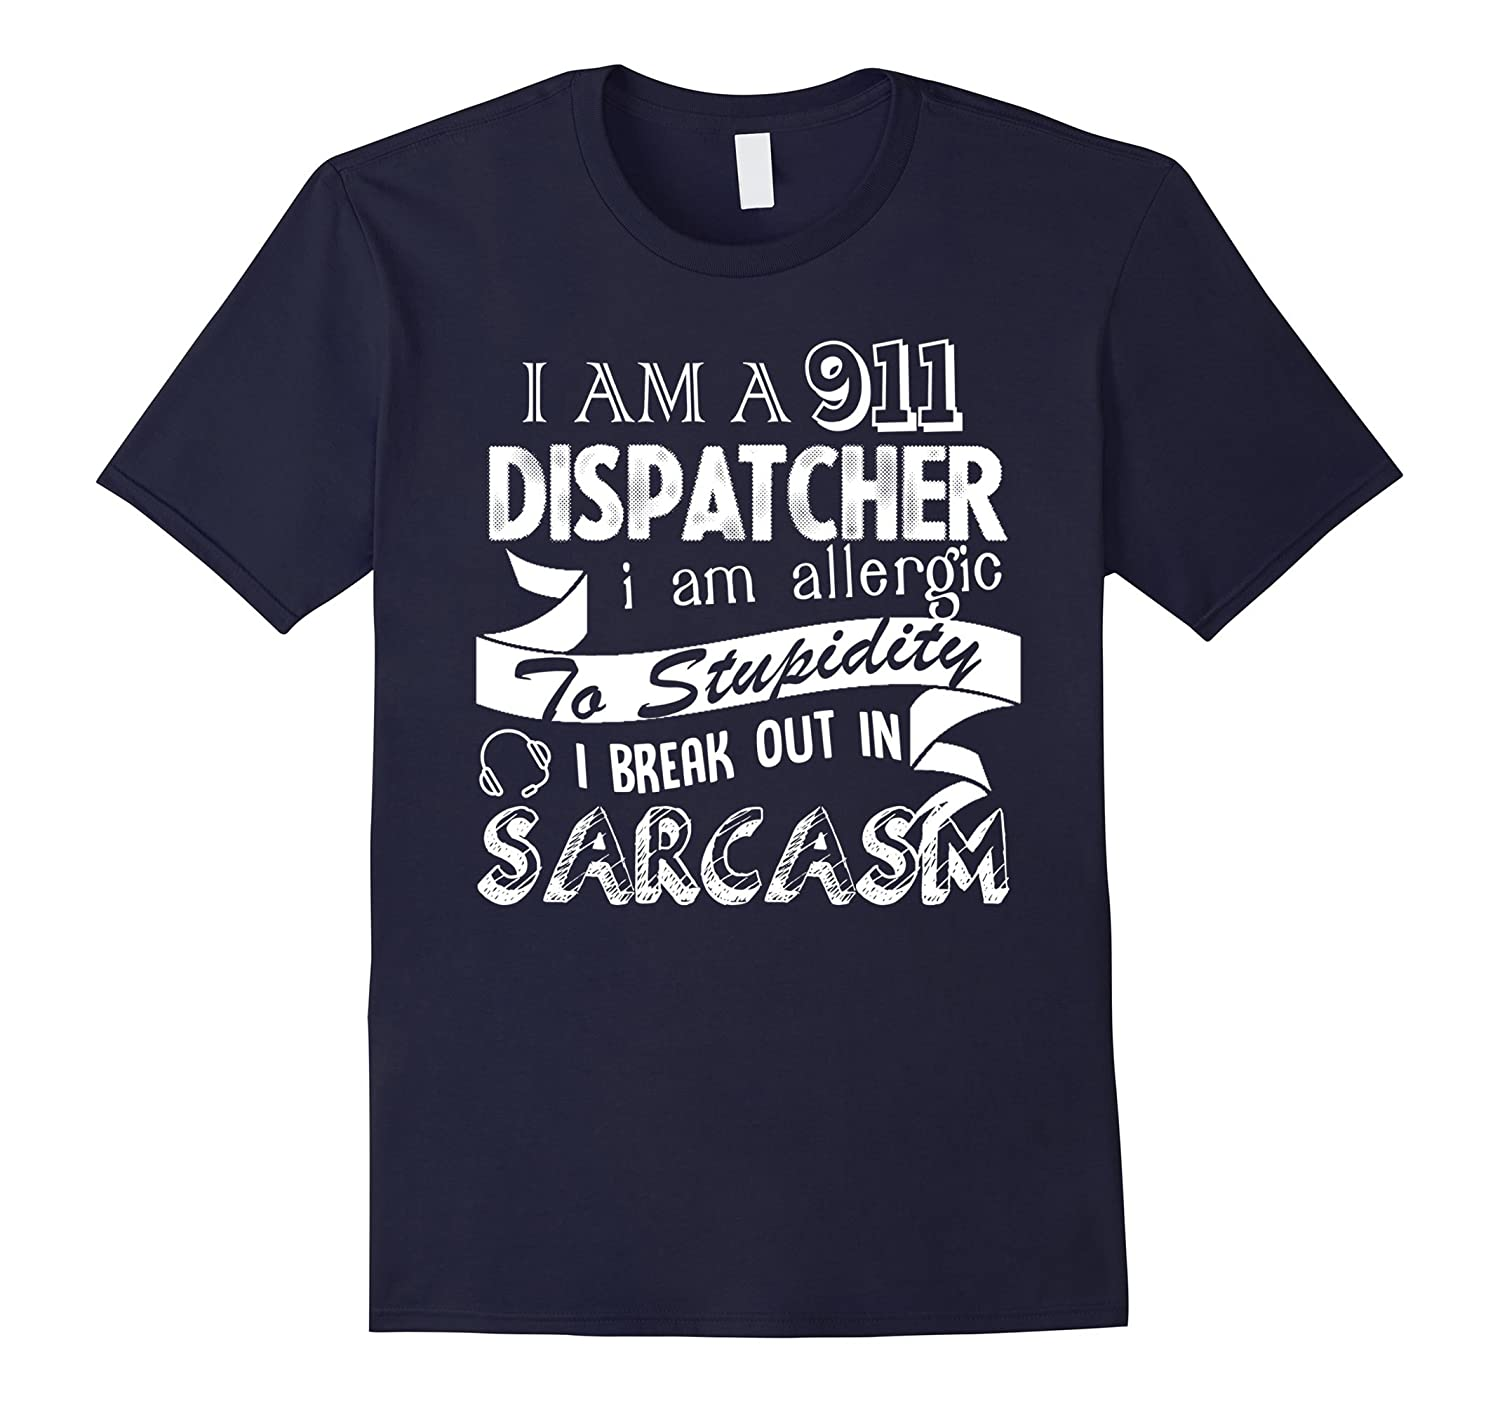 911 Dispatcher Shirts - I Am A 911 Dispatcher T shirt-Art